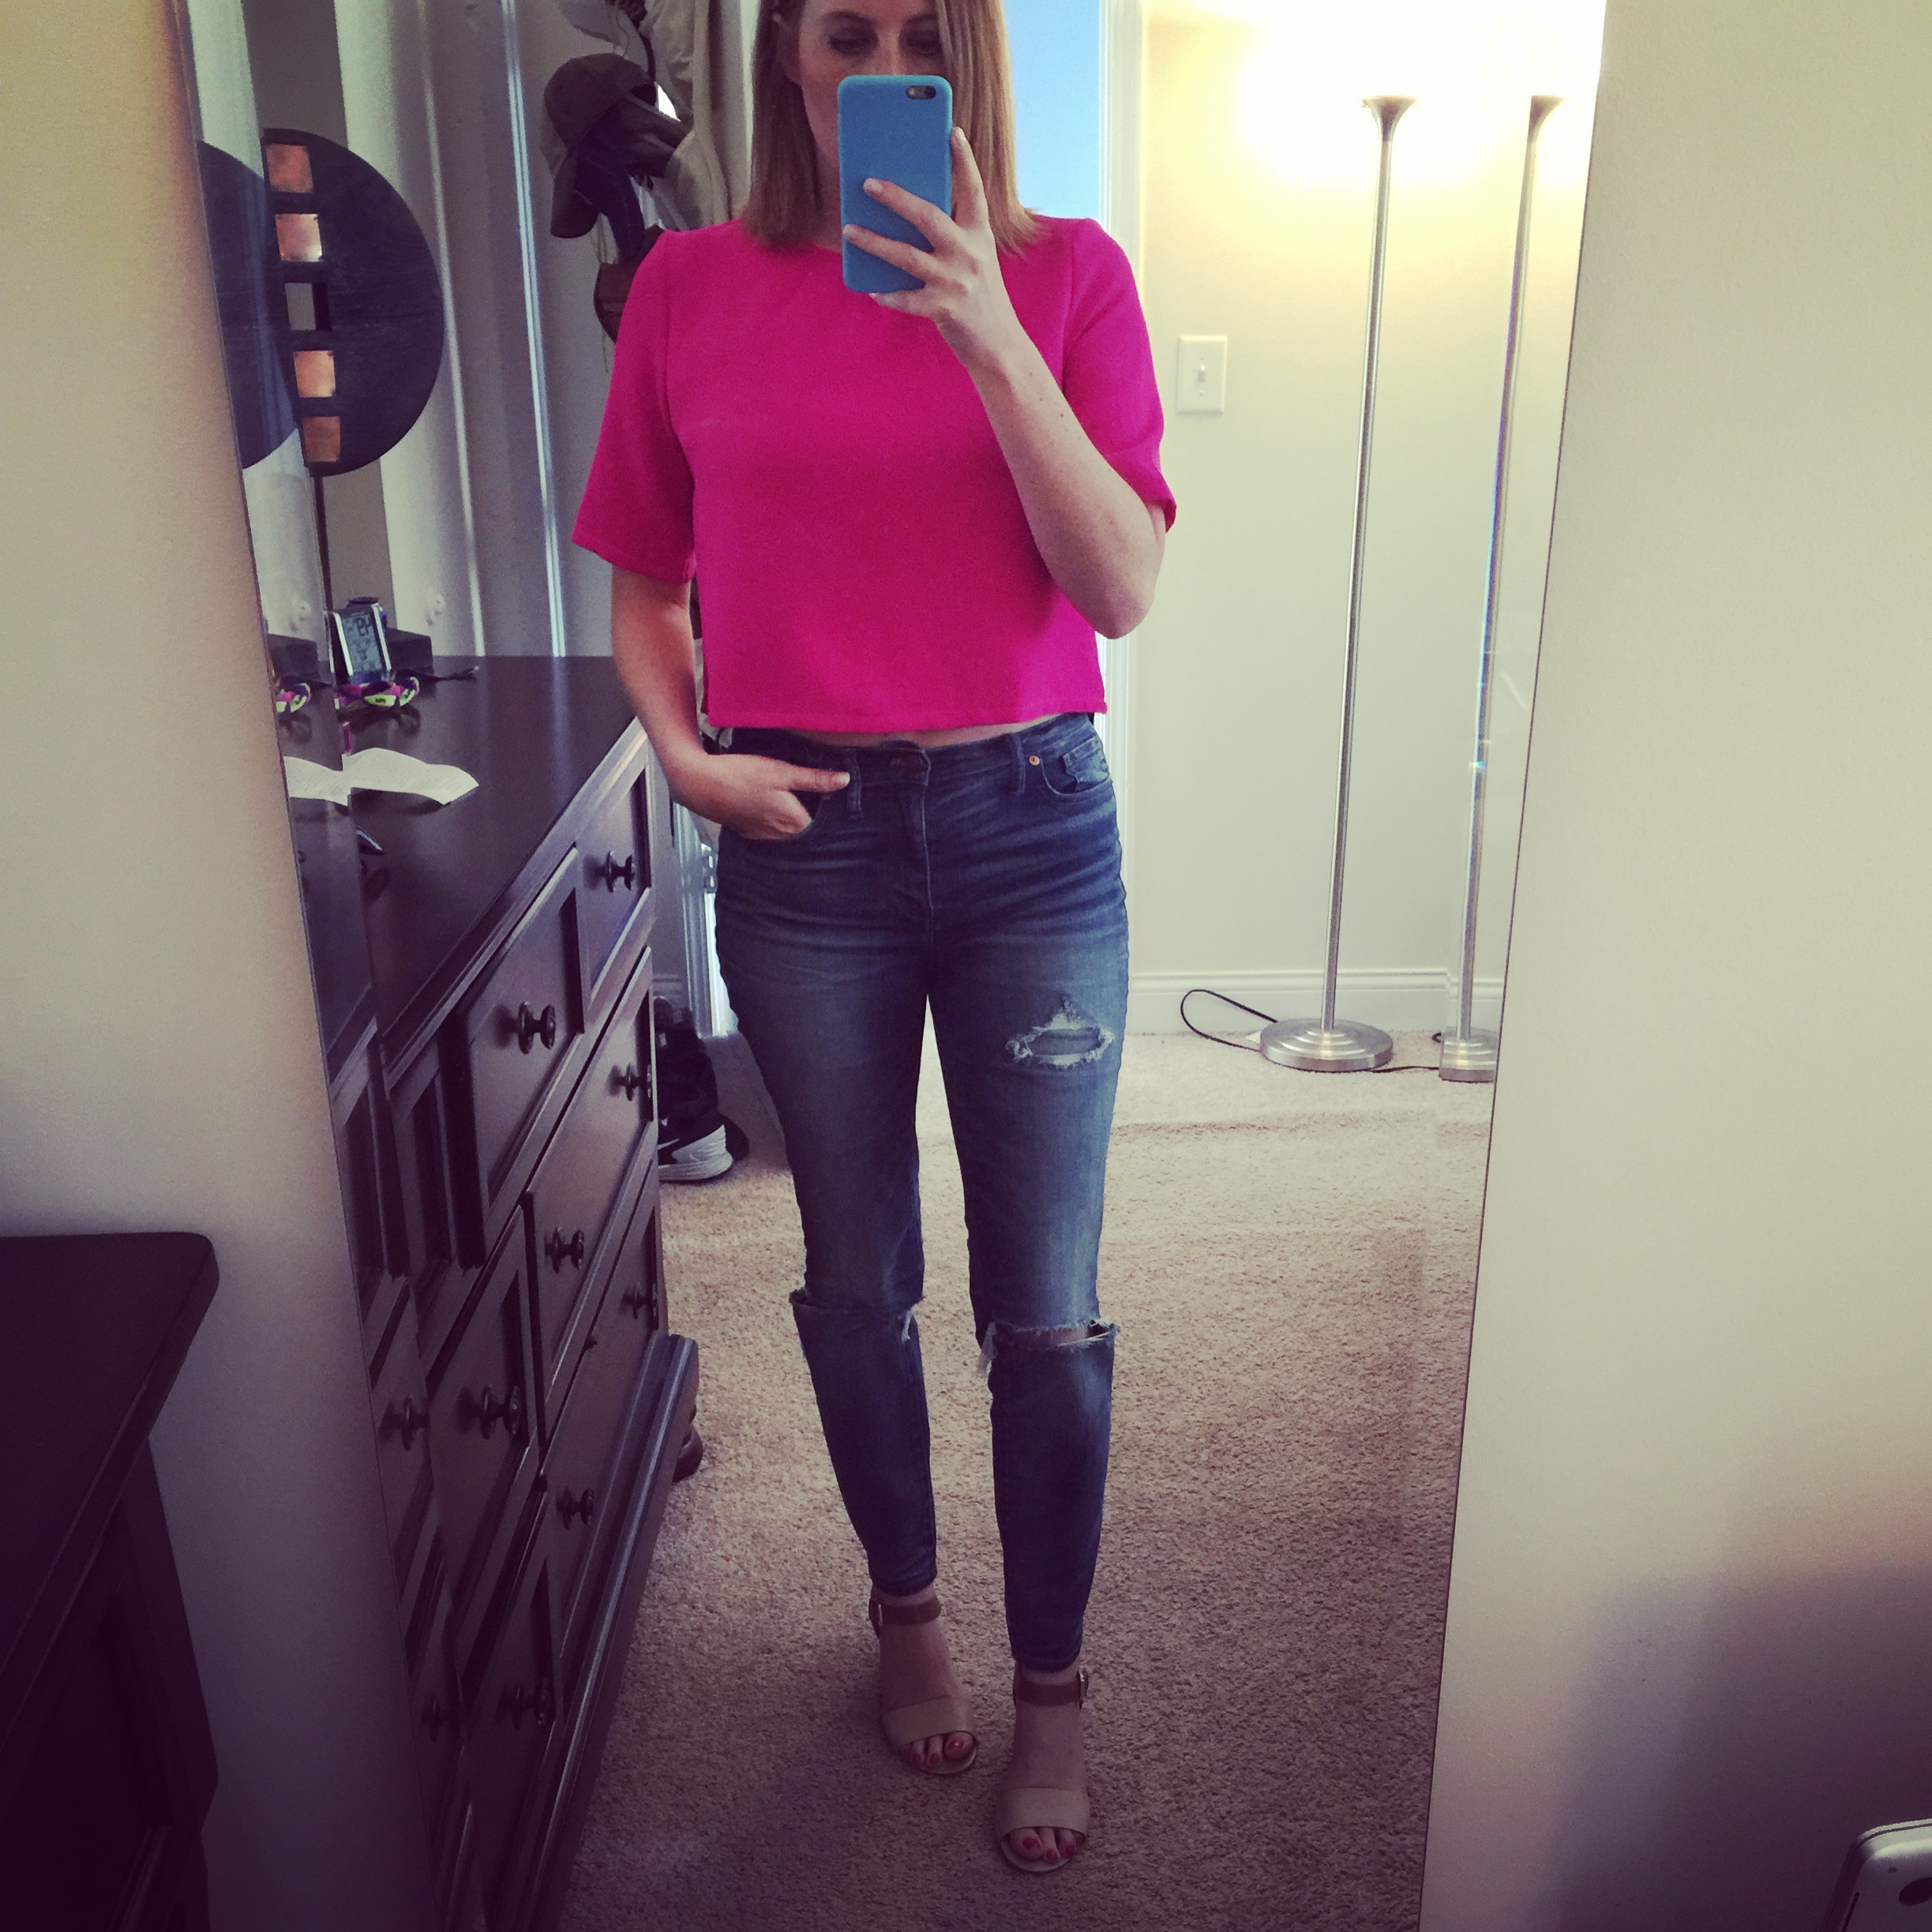 Top: Francesca's,Jeans: Madewell, High Riser Skinny , Shoes: DSW